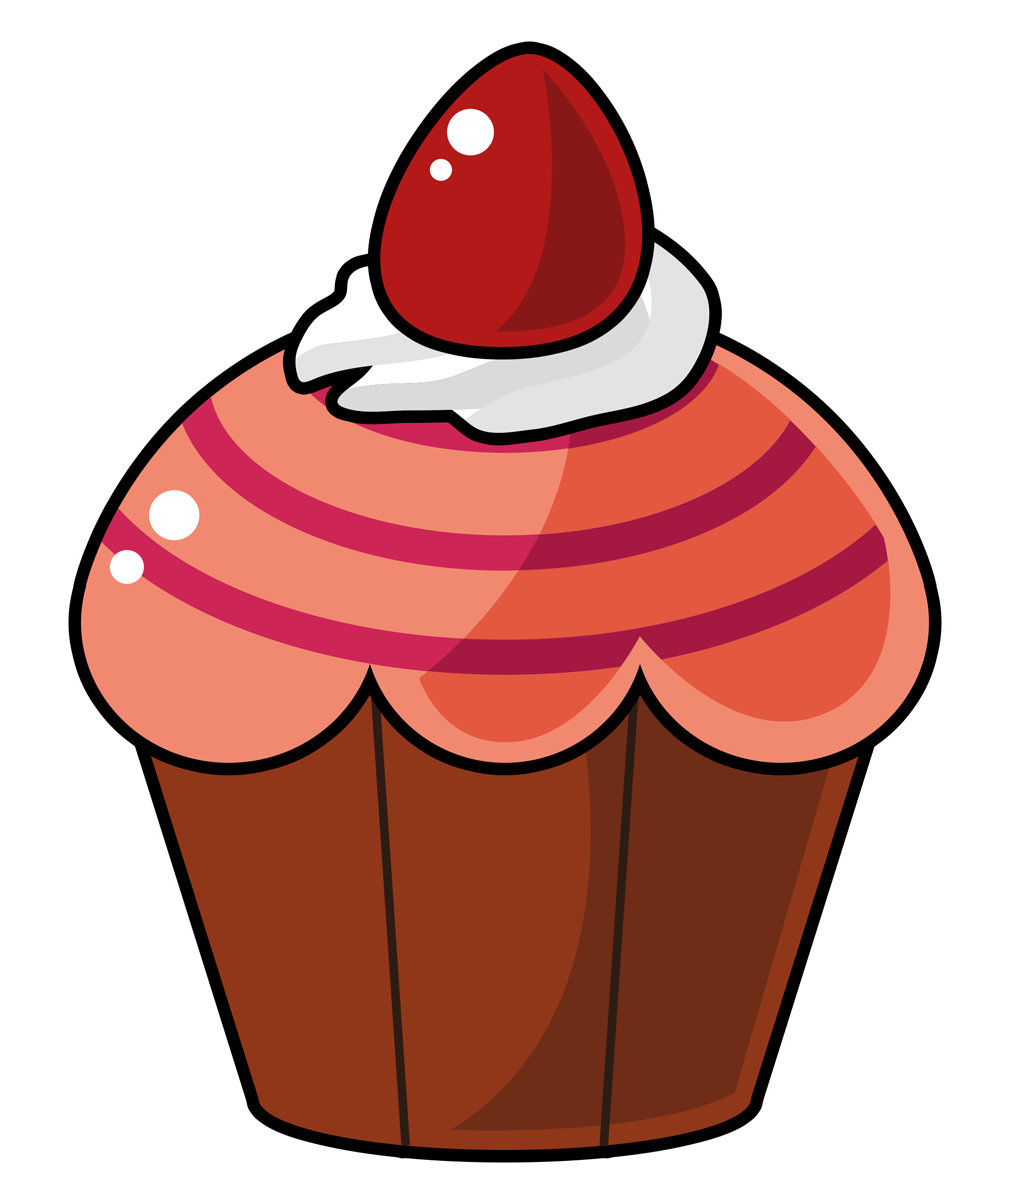 Free Cartoon Cupcake Clip Art u0026middot; cupcake13